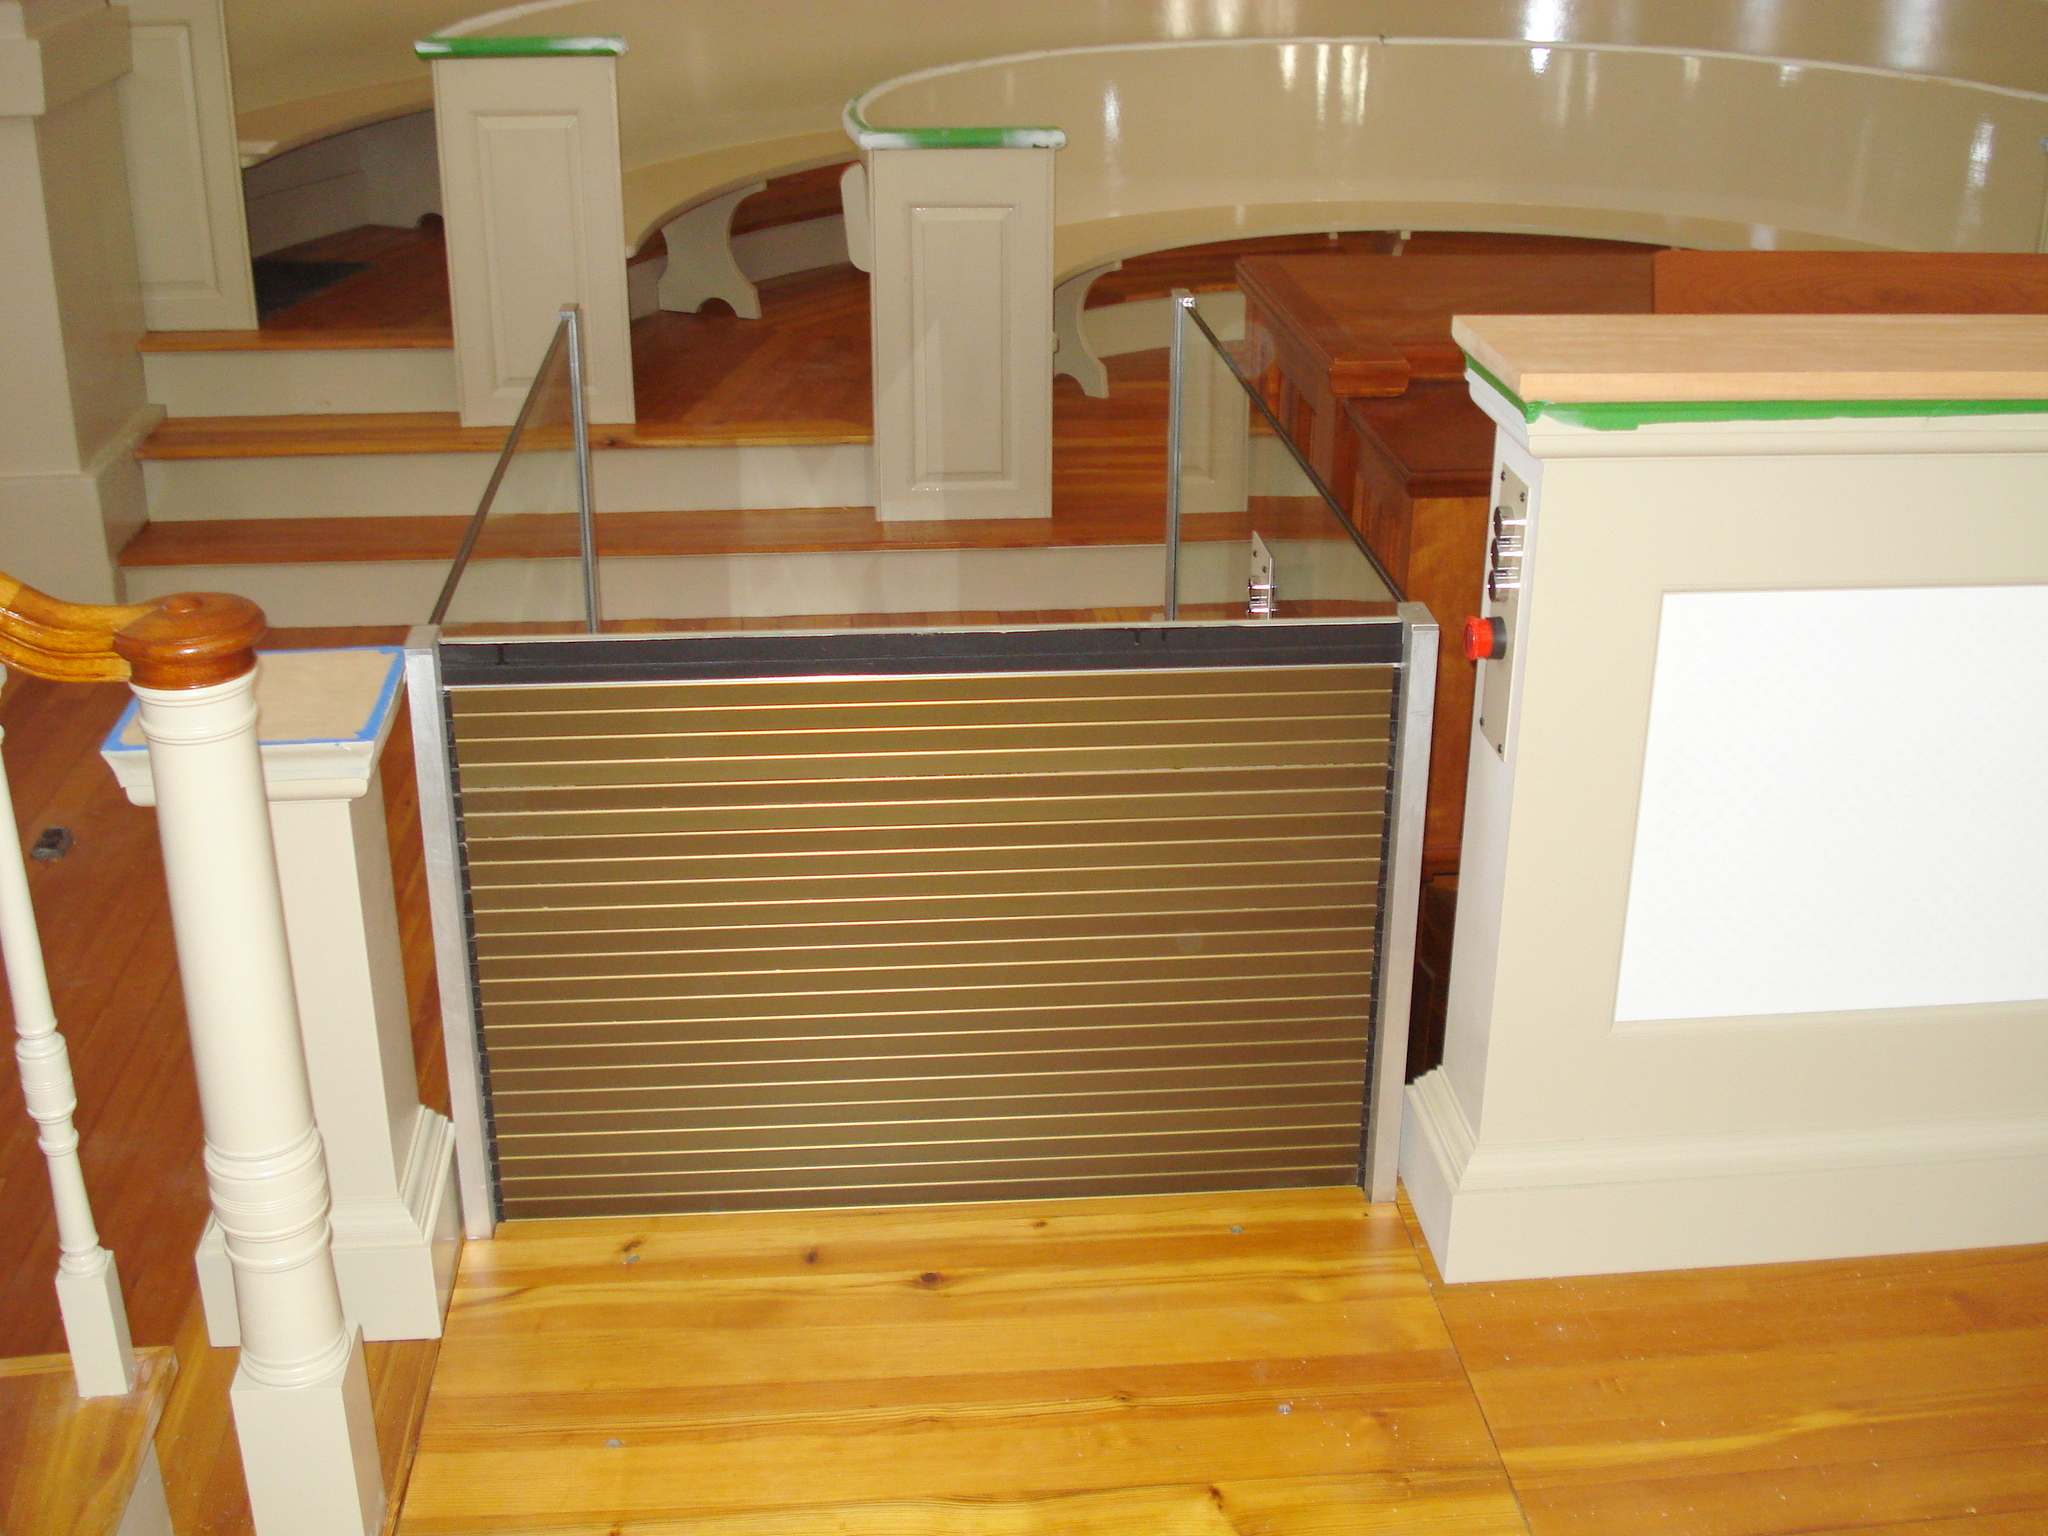 View of the lift in a church application from the upper level approach with the upper level roll-up barrier in the up position. Lift utilizes glass stationary sidewalls to blend in with surrounding aesthetics. Lift function readily available, independently operable.